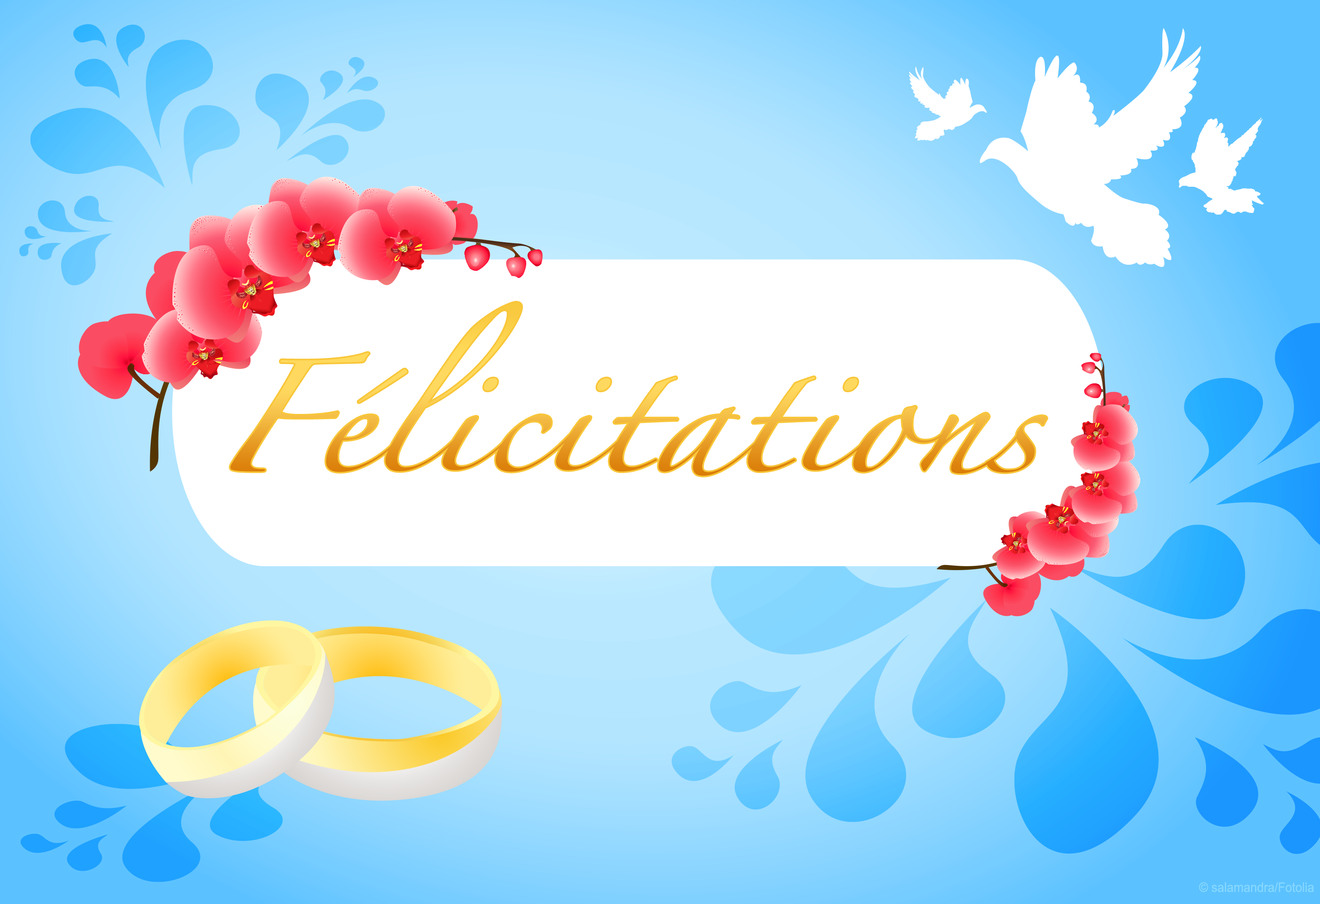 Felicitations mariage